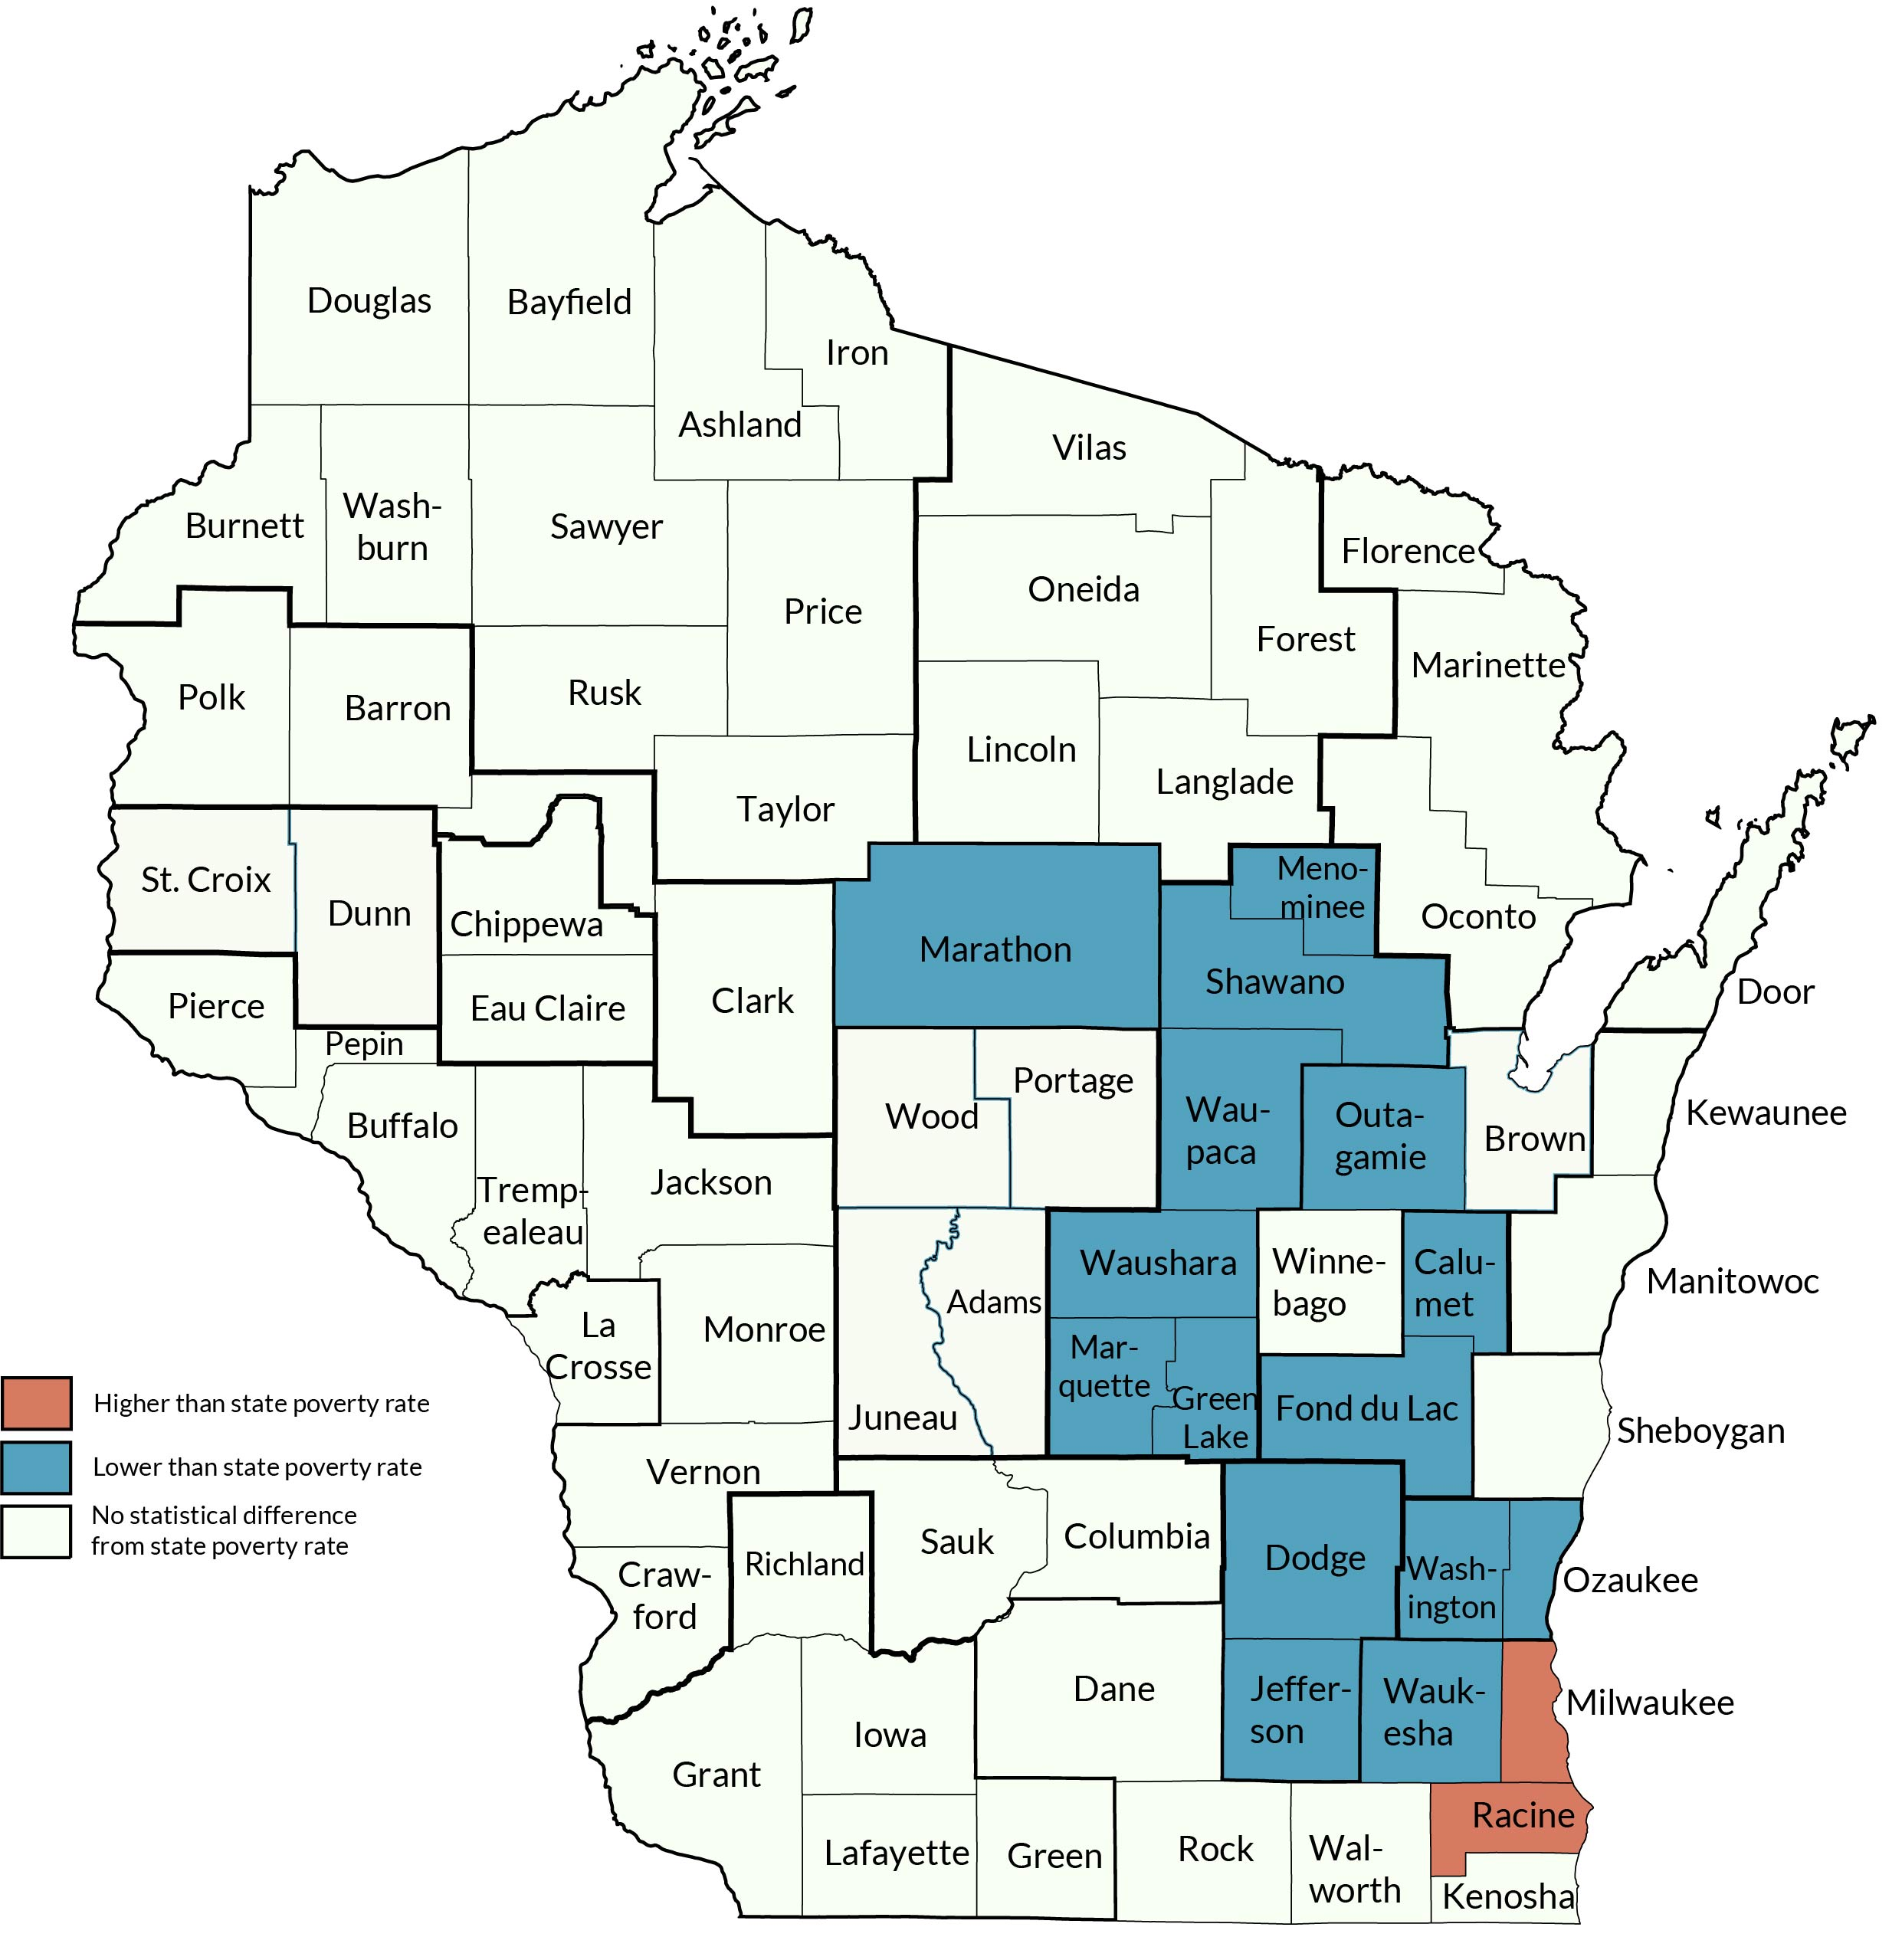 The poverty rates in Milwaukee and Racine Counties were higher than the rest of Wisconsin, while a handful of sub-state areas in the east-central region had lower rates.